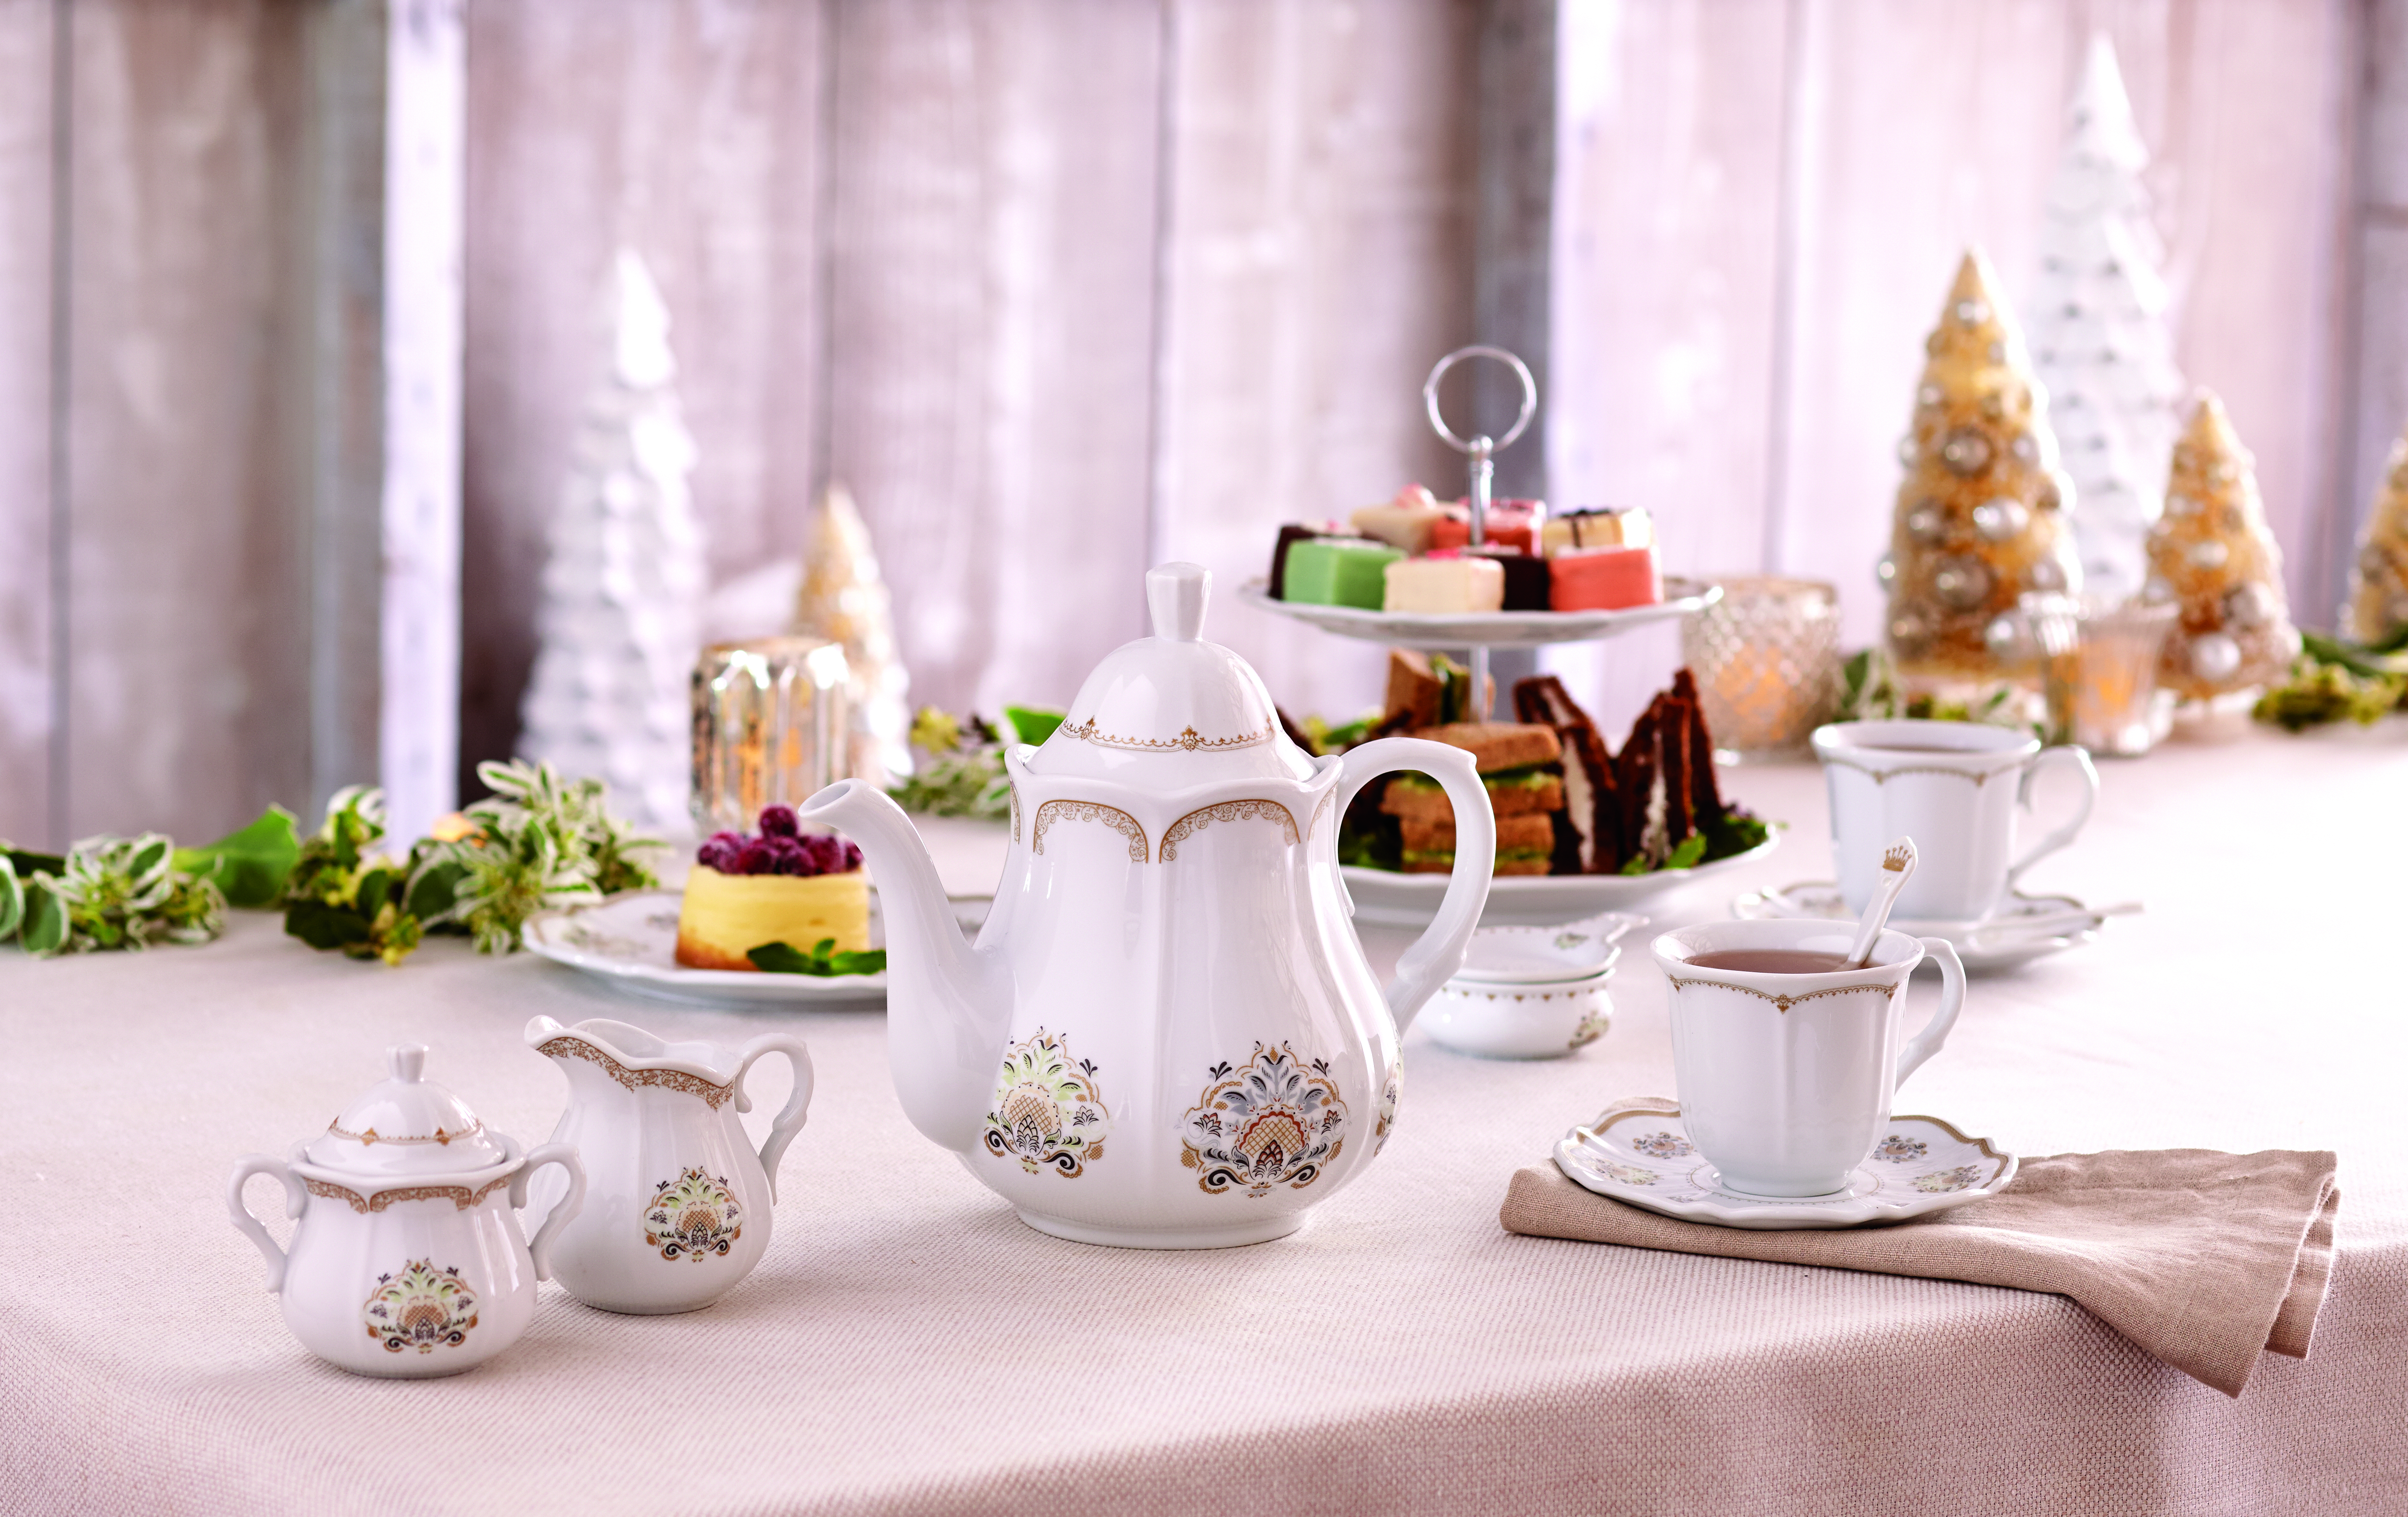 Party downton abbey virtual tea party see vanessa craft do the downton virtual tea party monicamarmolfo Image collections